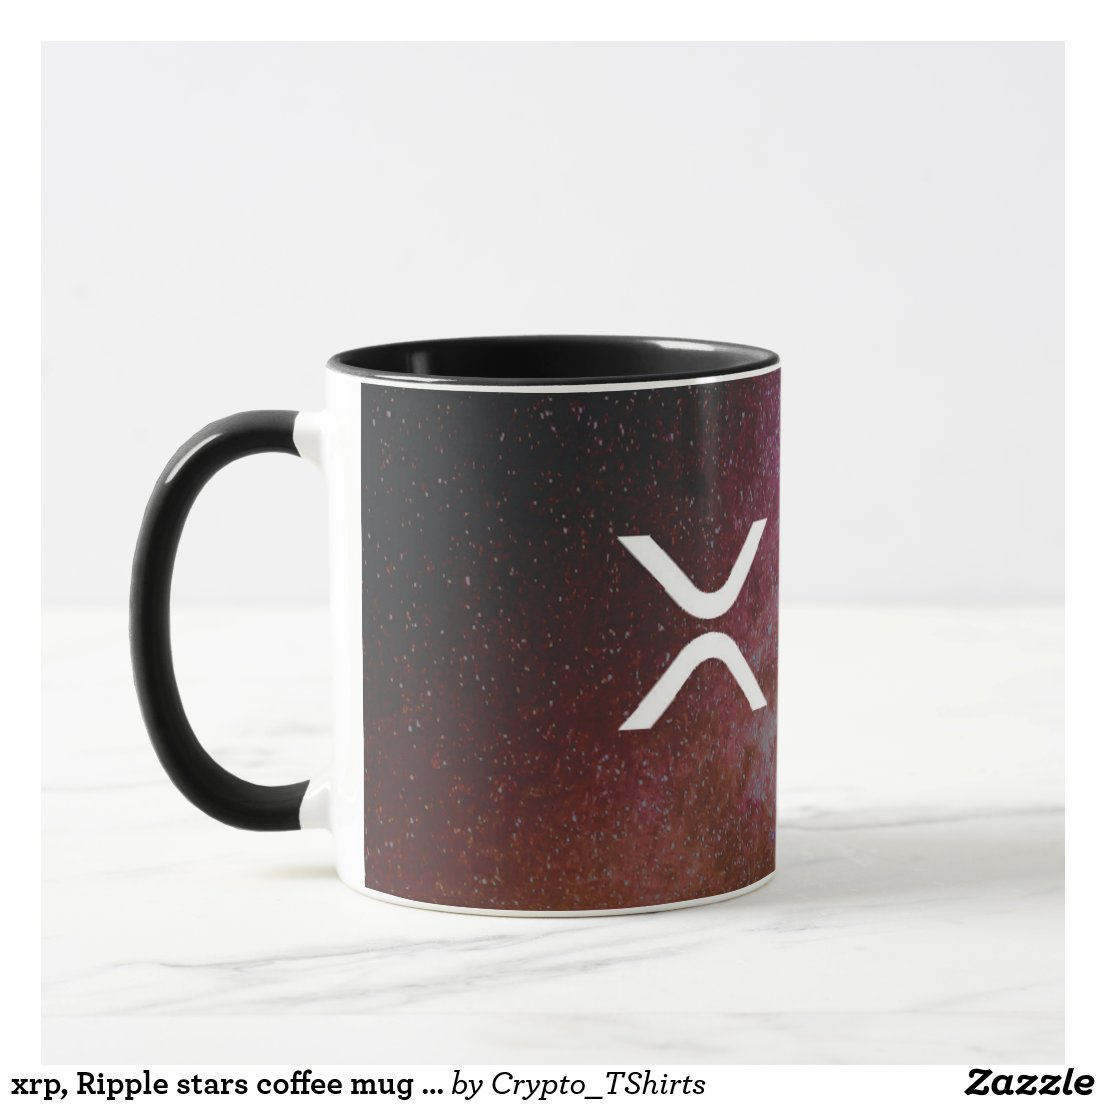 xrp, Ripple stars coffee mug / cup